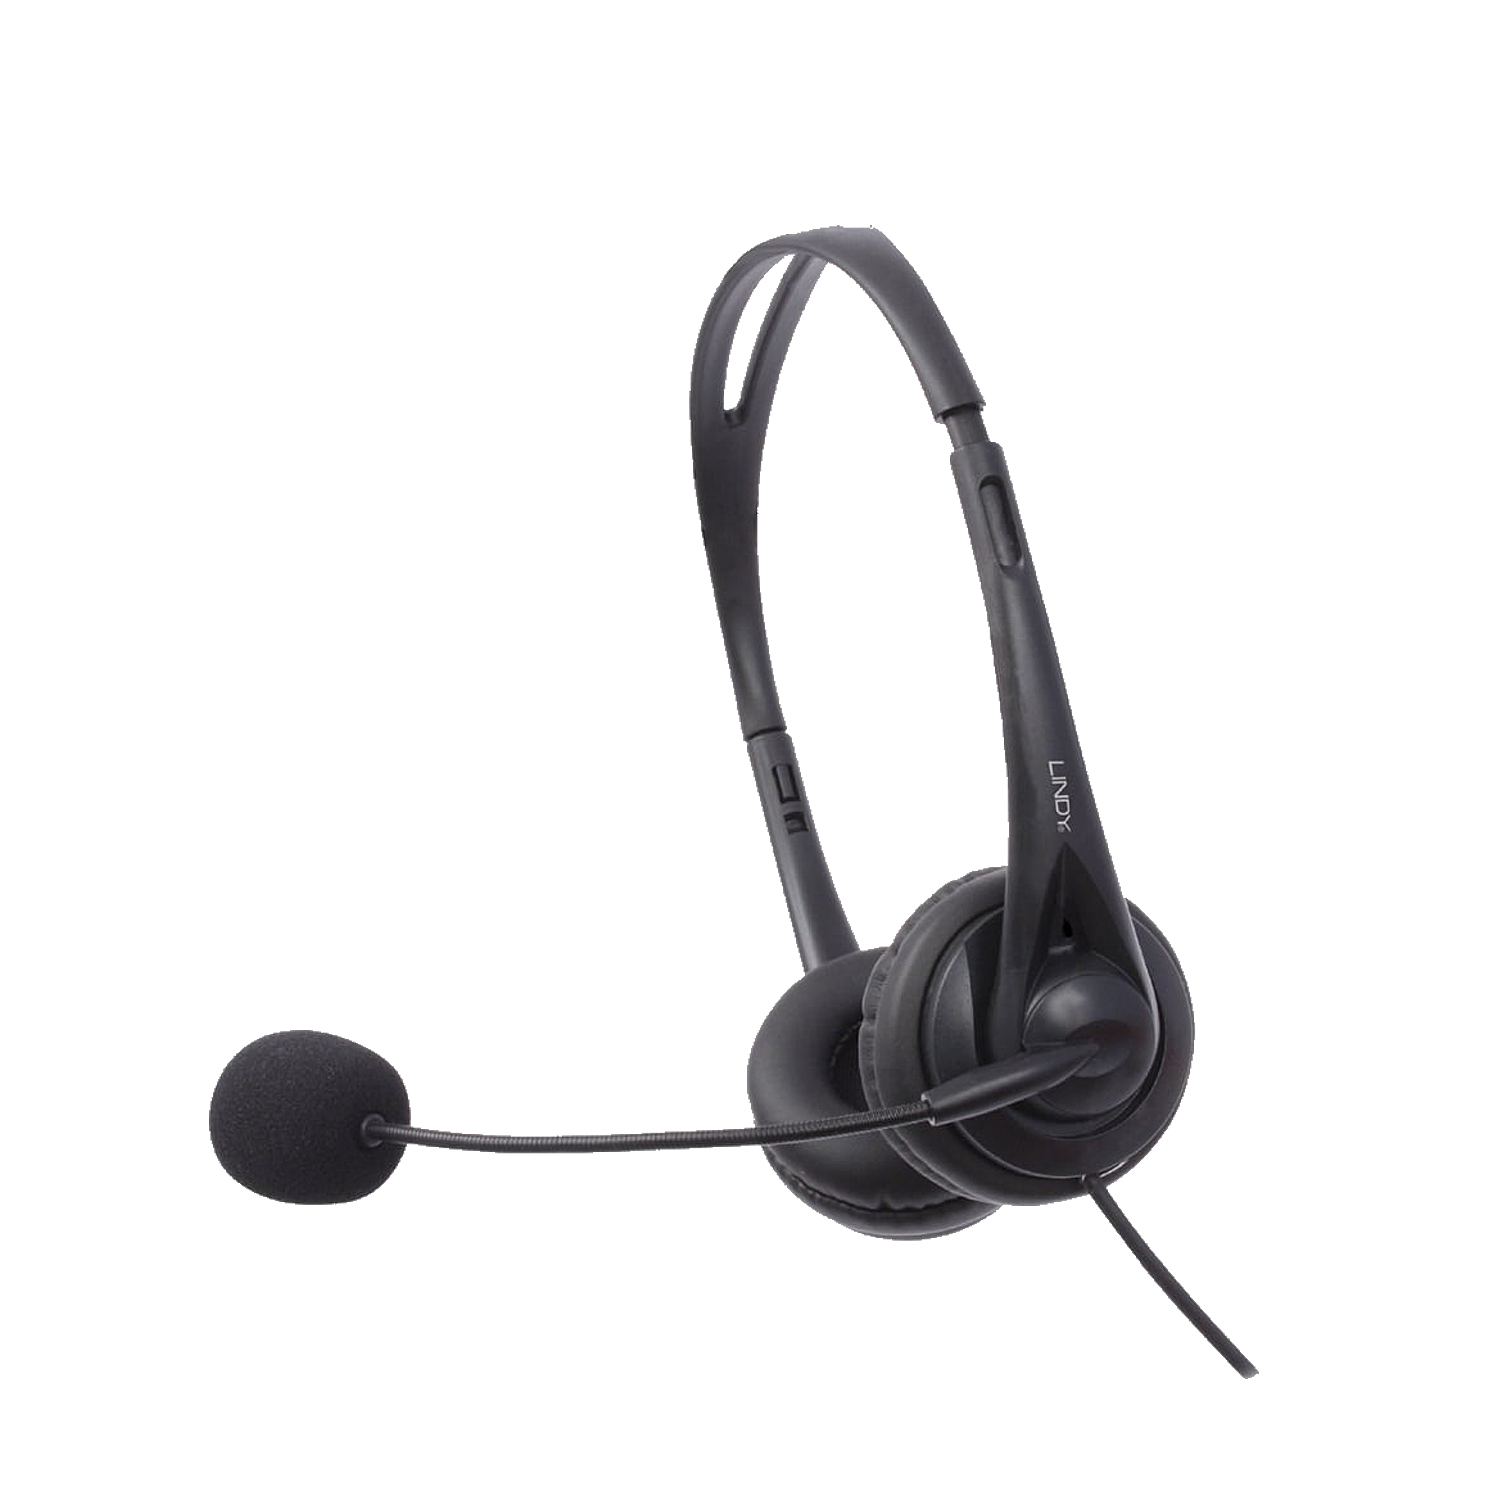 LINDY 42870 HEADSET HEAD-BAND BINAURAL BLACK